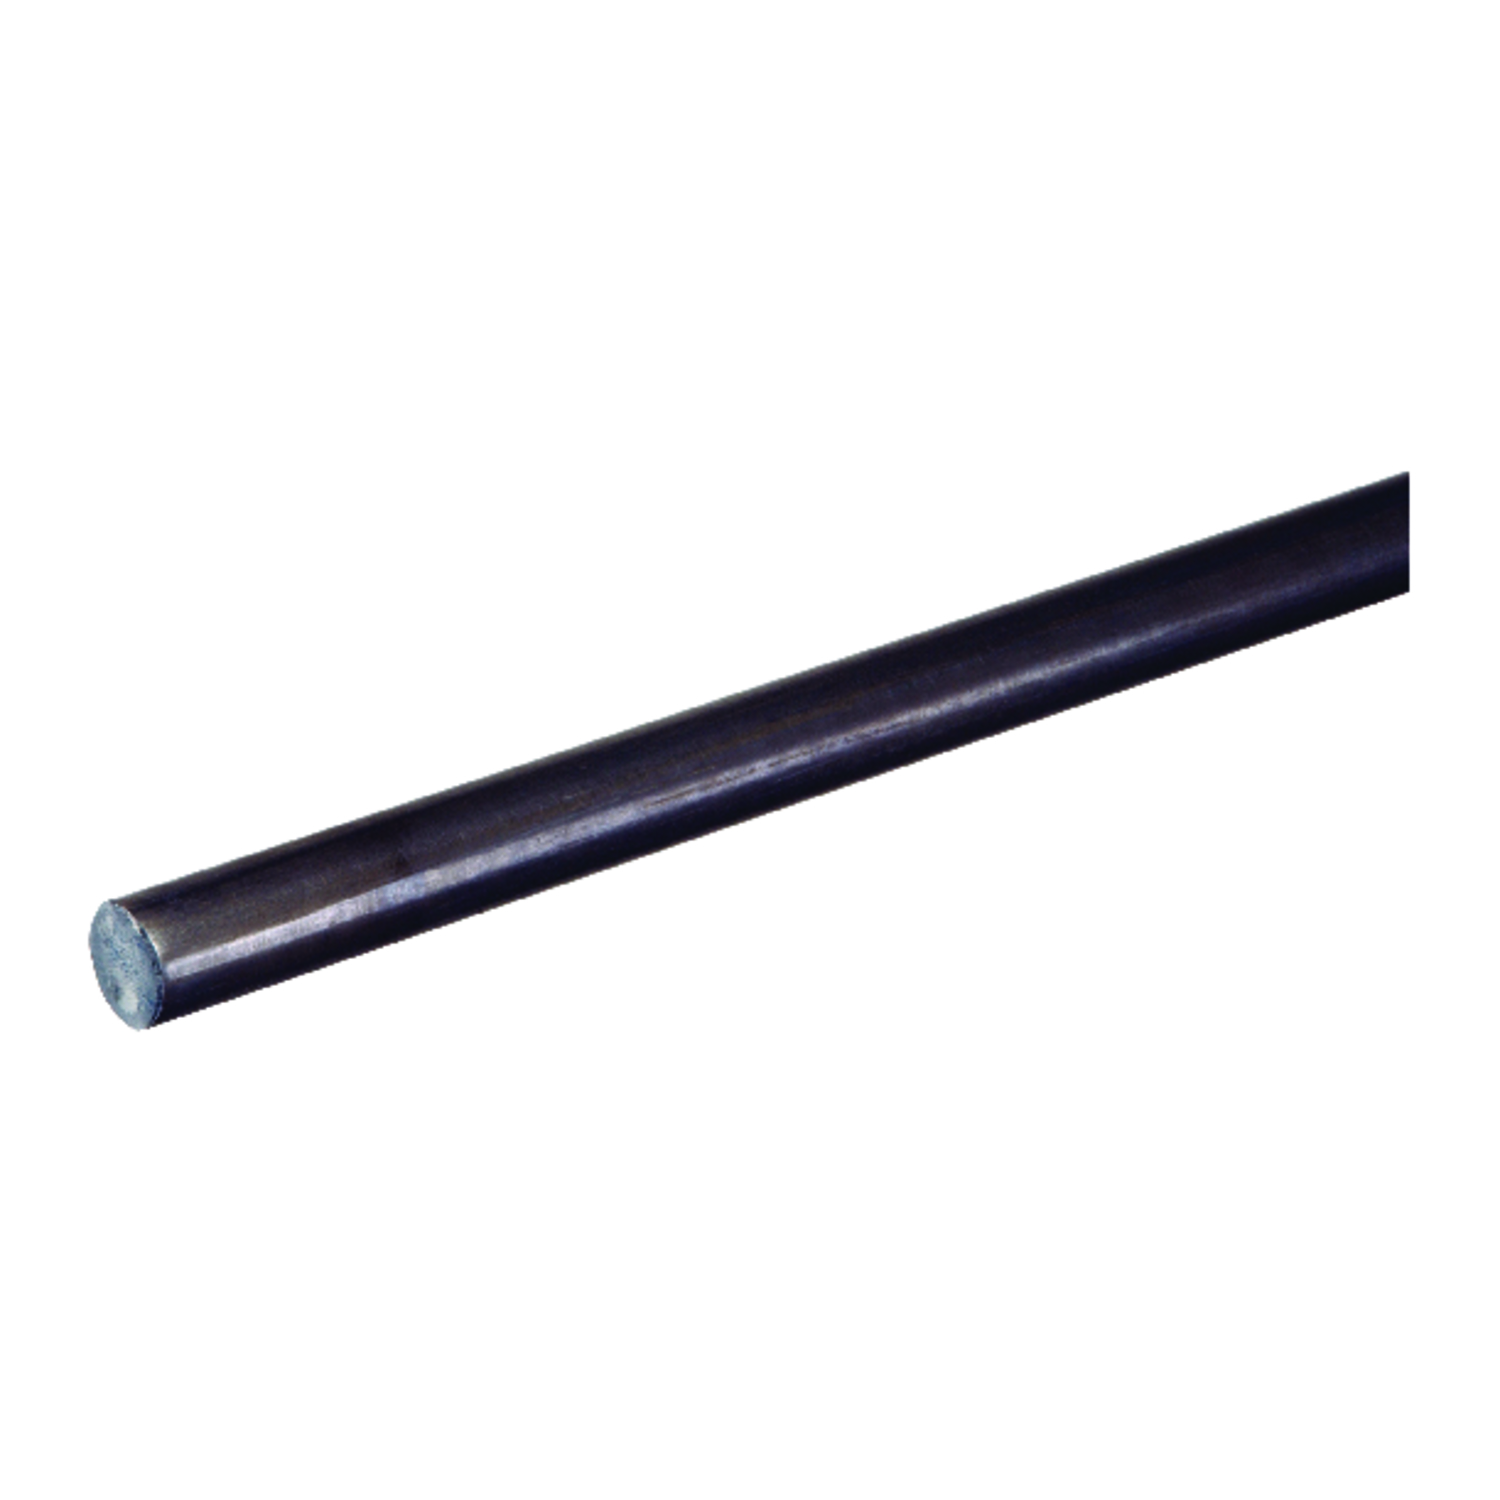 Boltmaster  1/2 in. Dia. x 3 ft. L Cold Rolled Steel  Weldable Unthreaded Rod